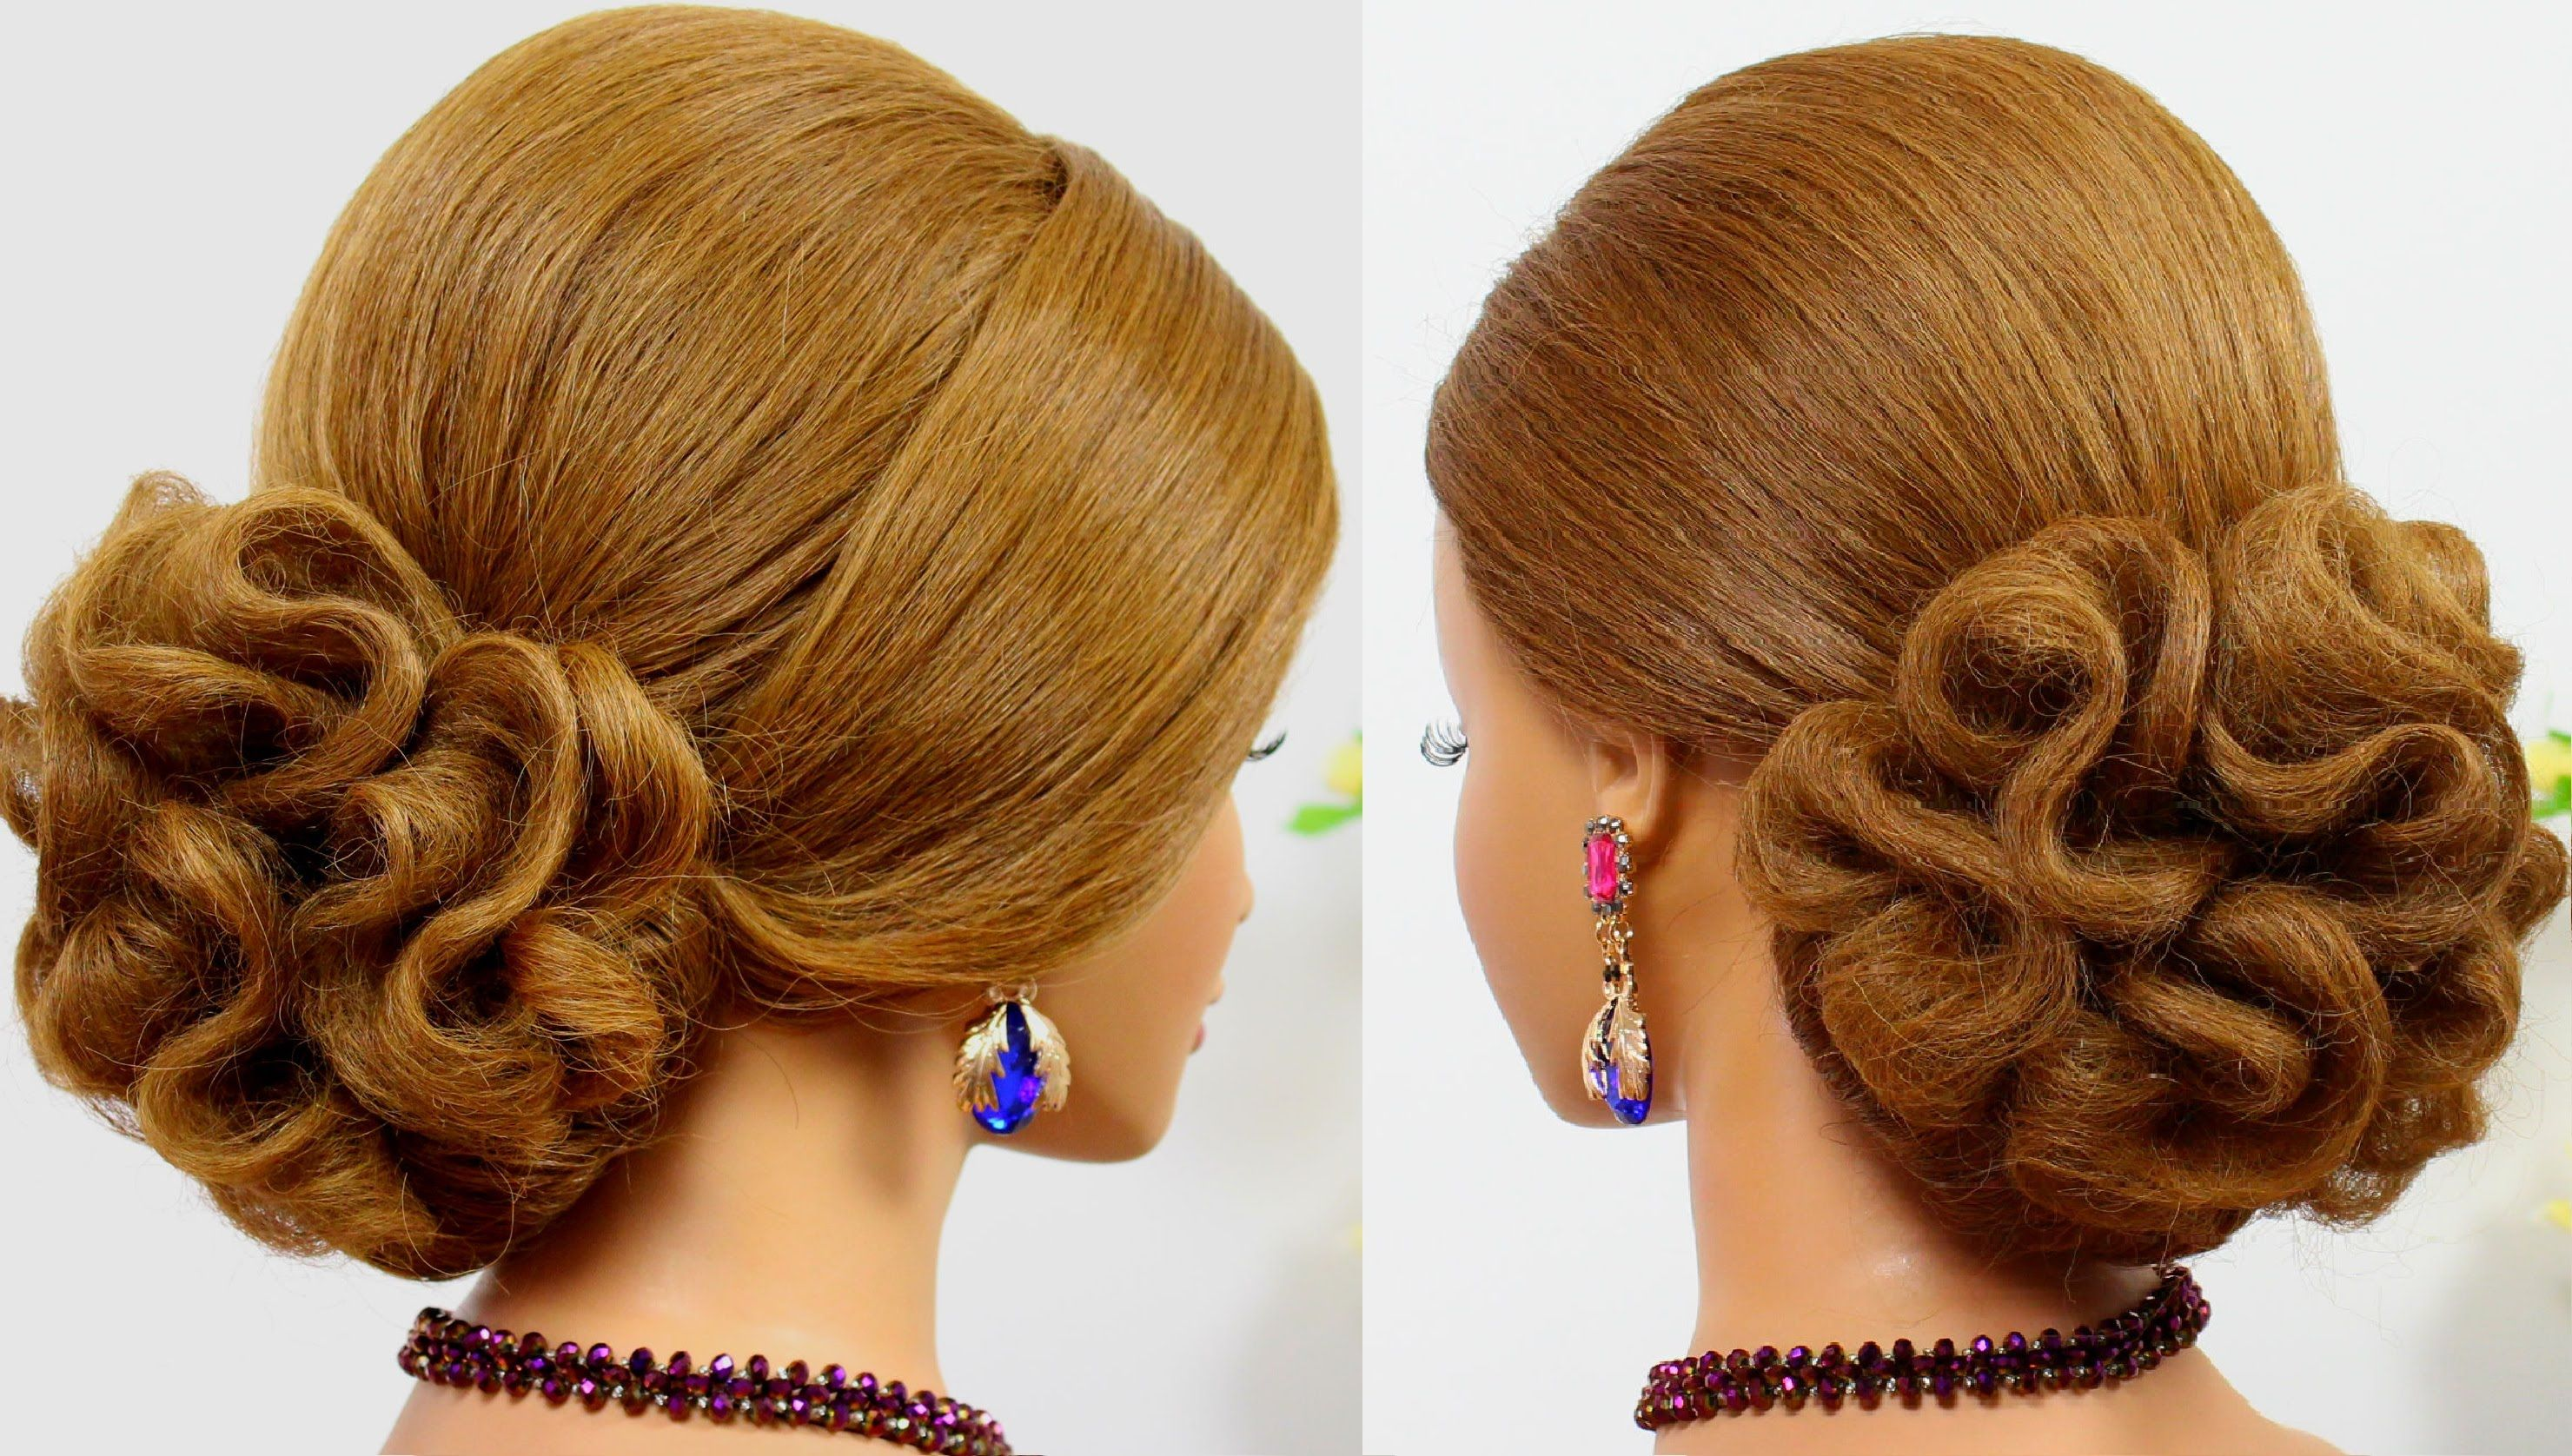 34 Diy Hairstyle Tutorials For Wedding And Prom Hair Styles Wedding Hairstyles Tutorial Updo Hairstyles Tutorials